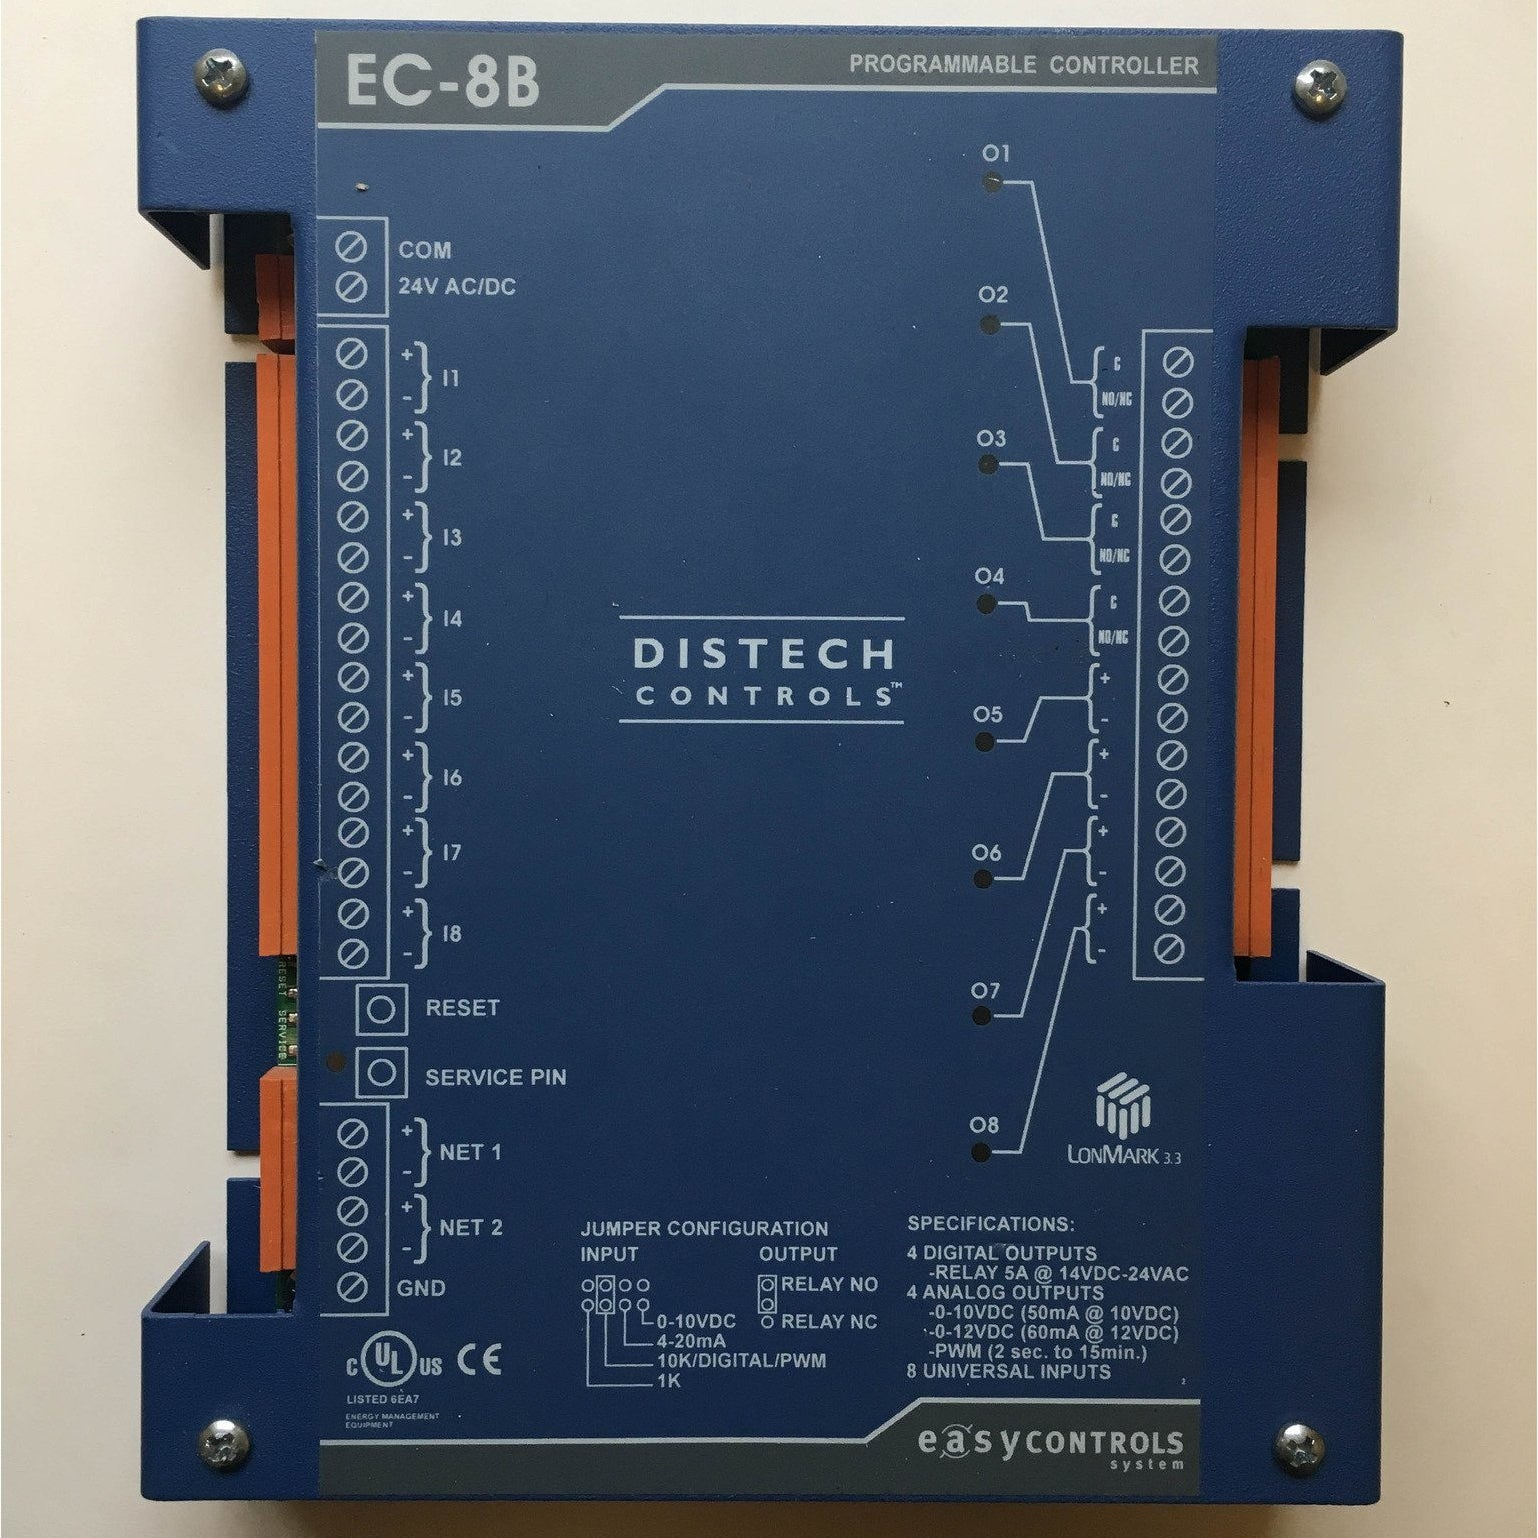 Distech Controls EC-8B Programmable Controller